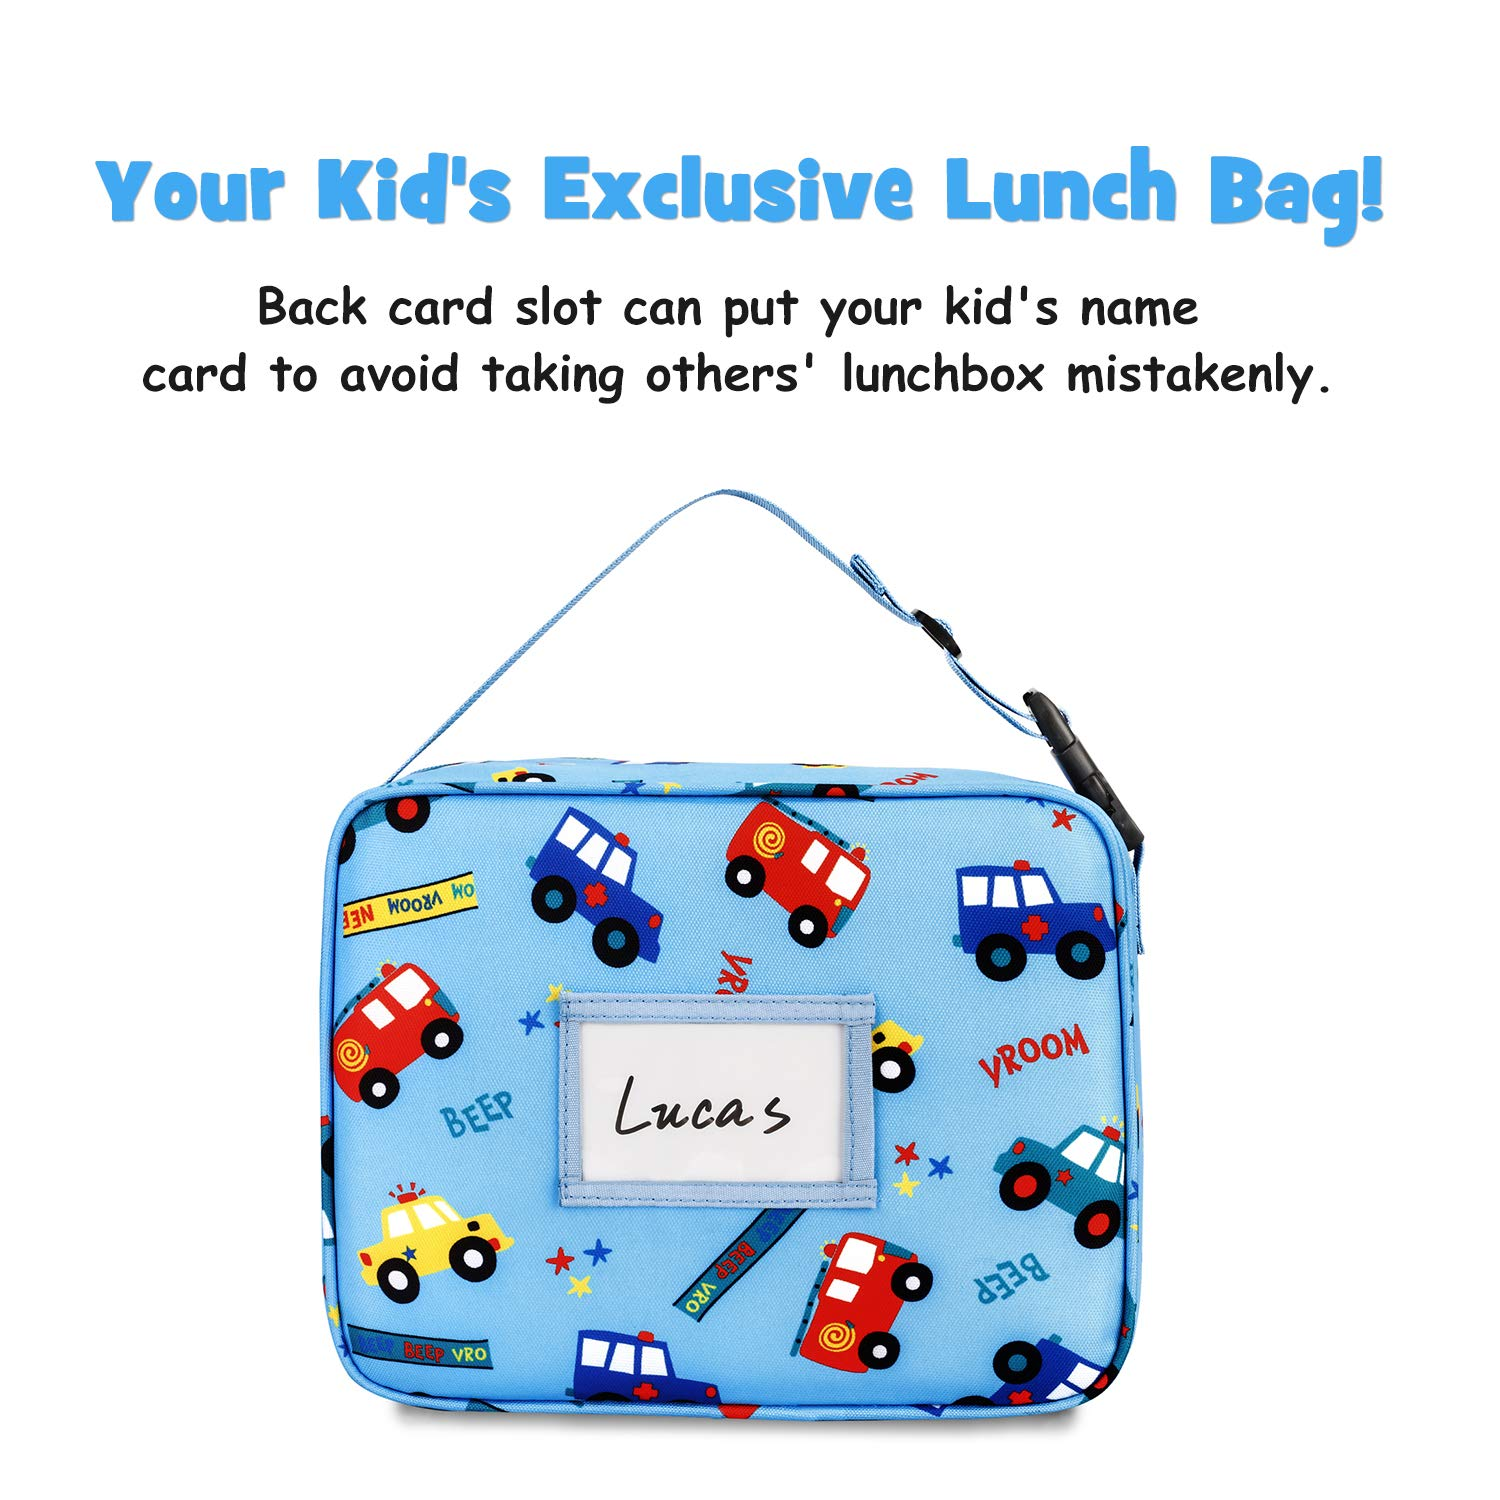 Bagmine Kid Lunch Bag Insulated Moisture Resistant Reusable Child Lunchbox with Multiple Patterns /& Card Slot for Kids Girls Boys /& Adults for School Picnic Travel or Work